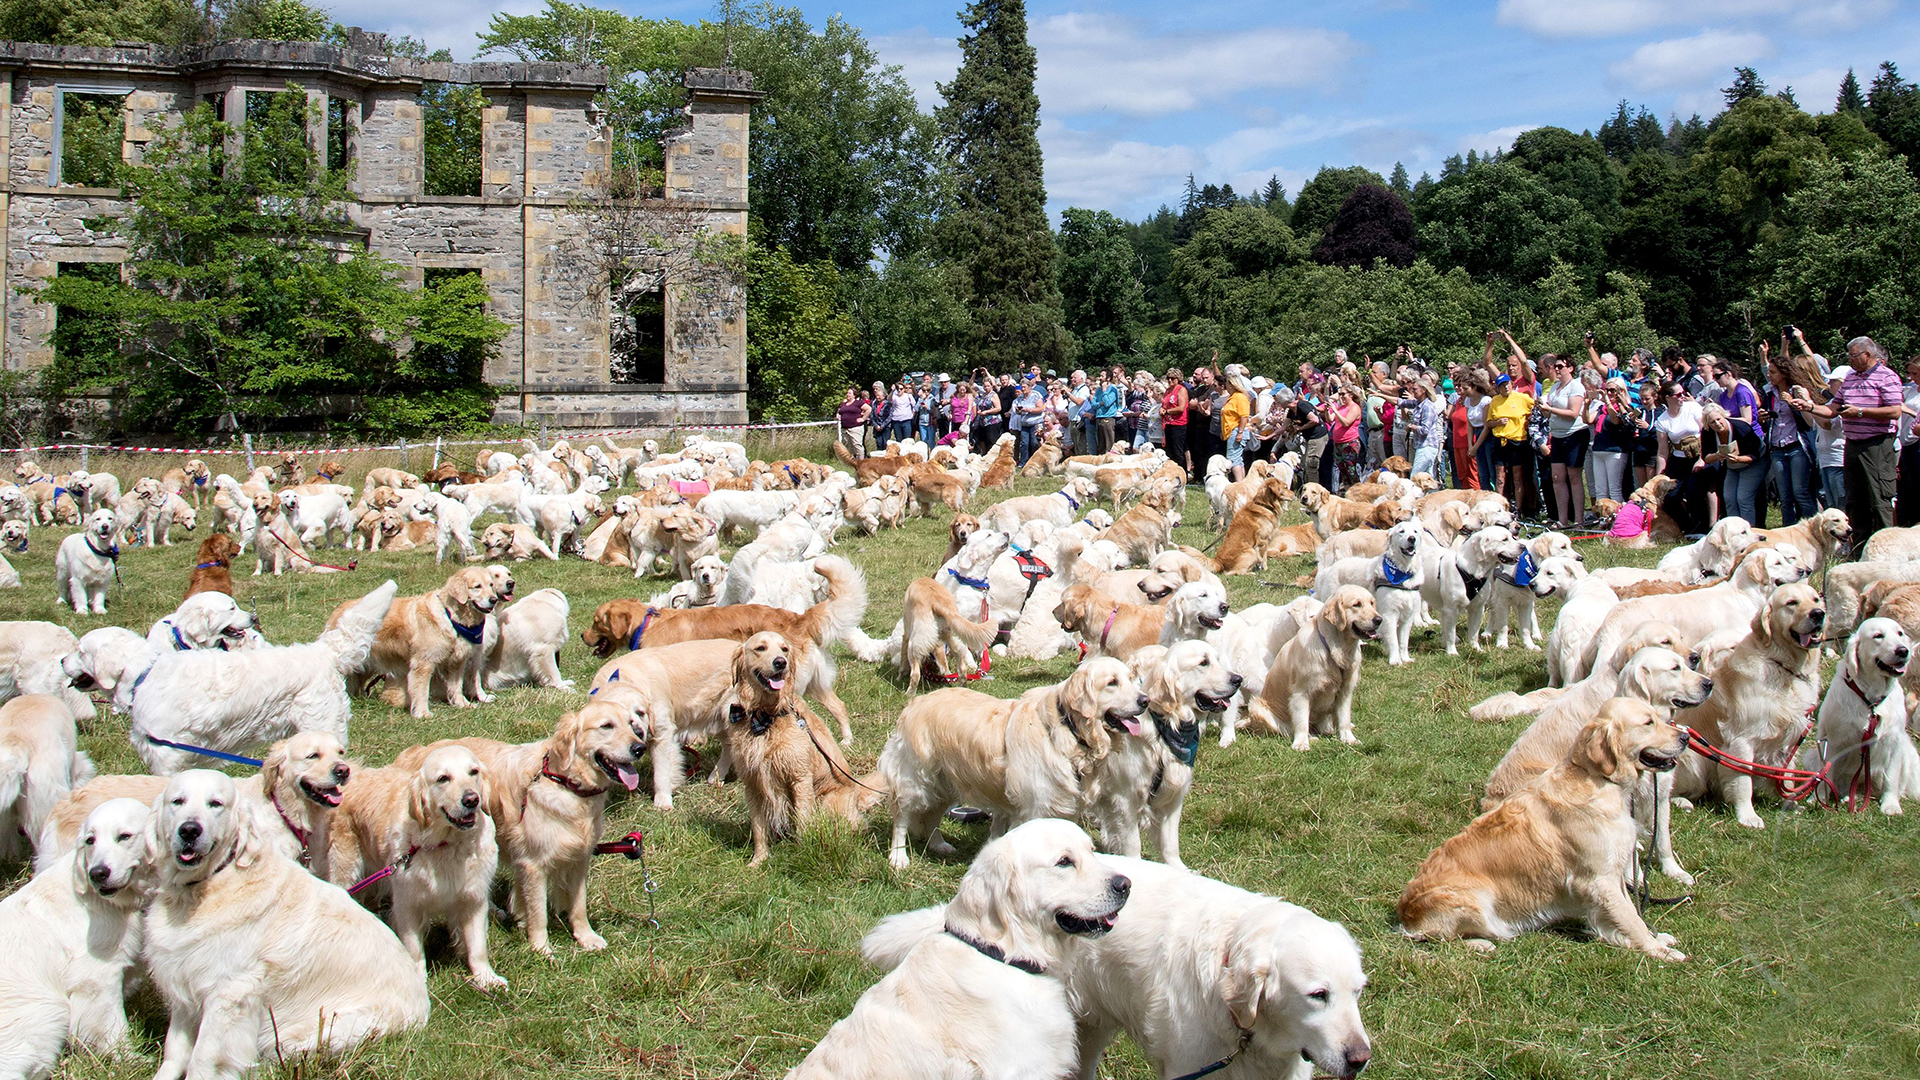 Hundreds of golden retrievers met in Scotland for 150th anniversary of breed